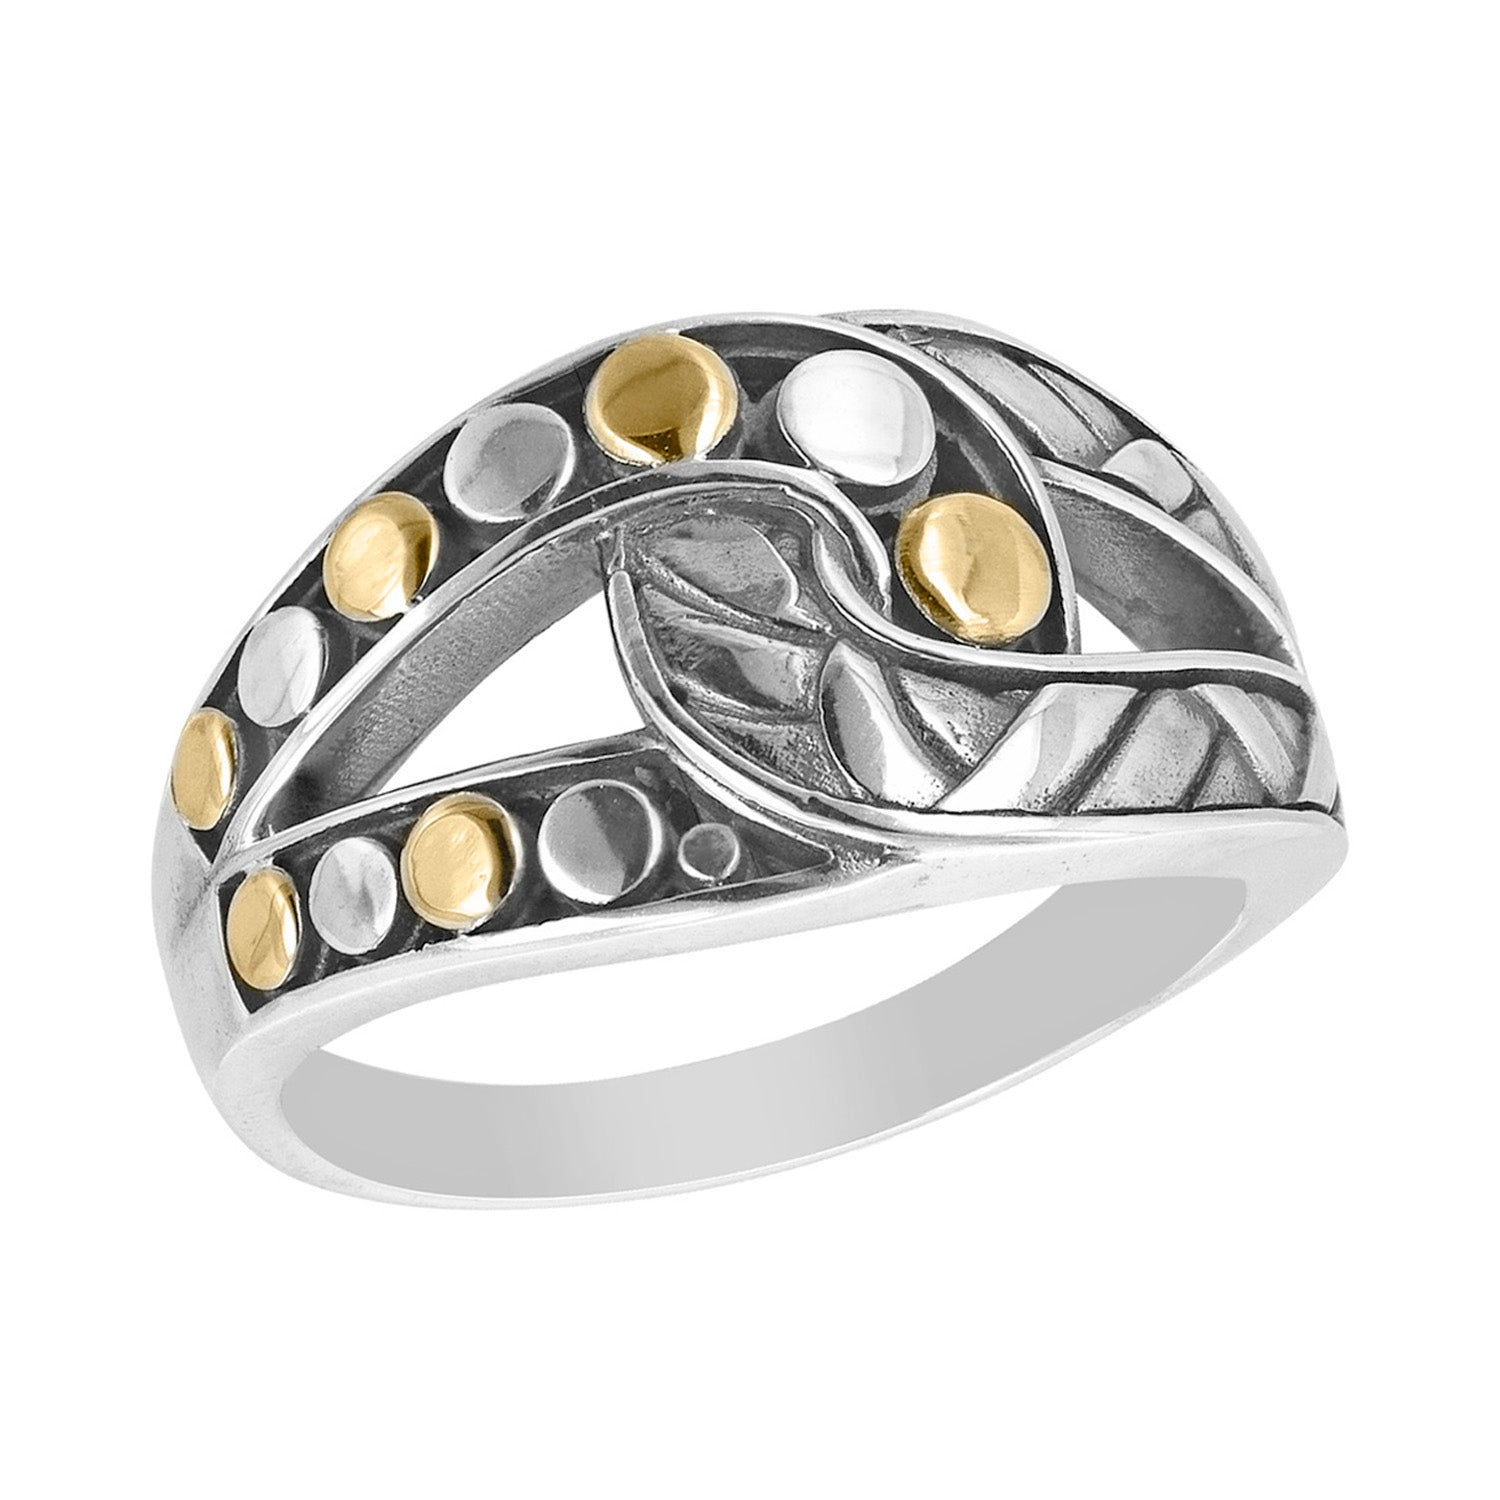 Sterling Silver Intertwined Pattern Ring with 18k Gold Accents